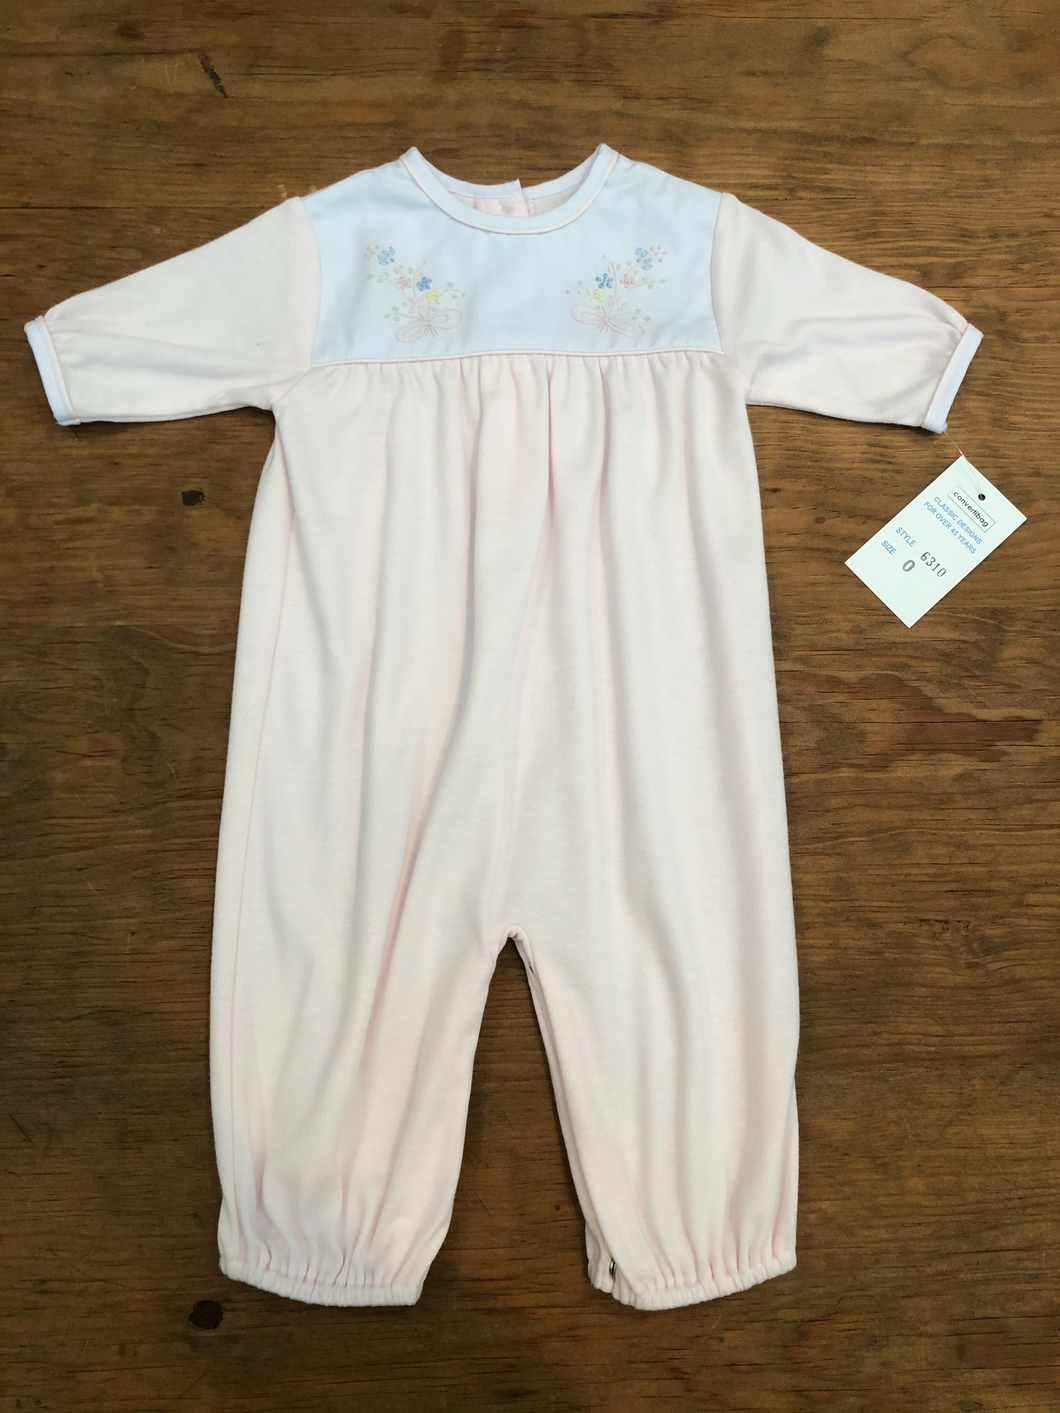 Pink Knit Playsuit with Embroidery - Posh Tots Children's Boutique